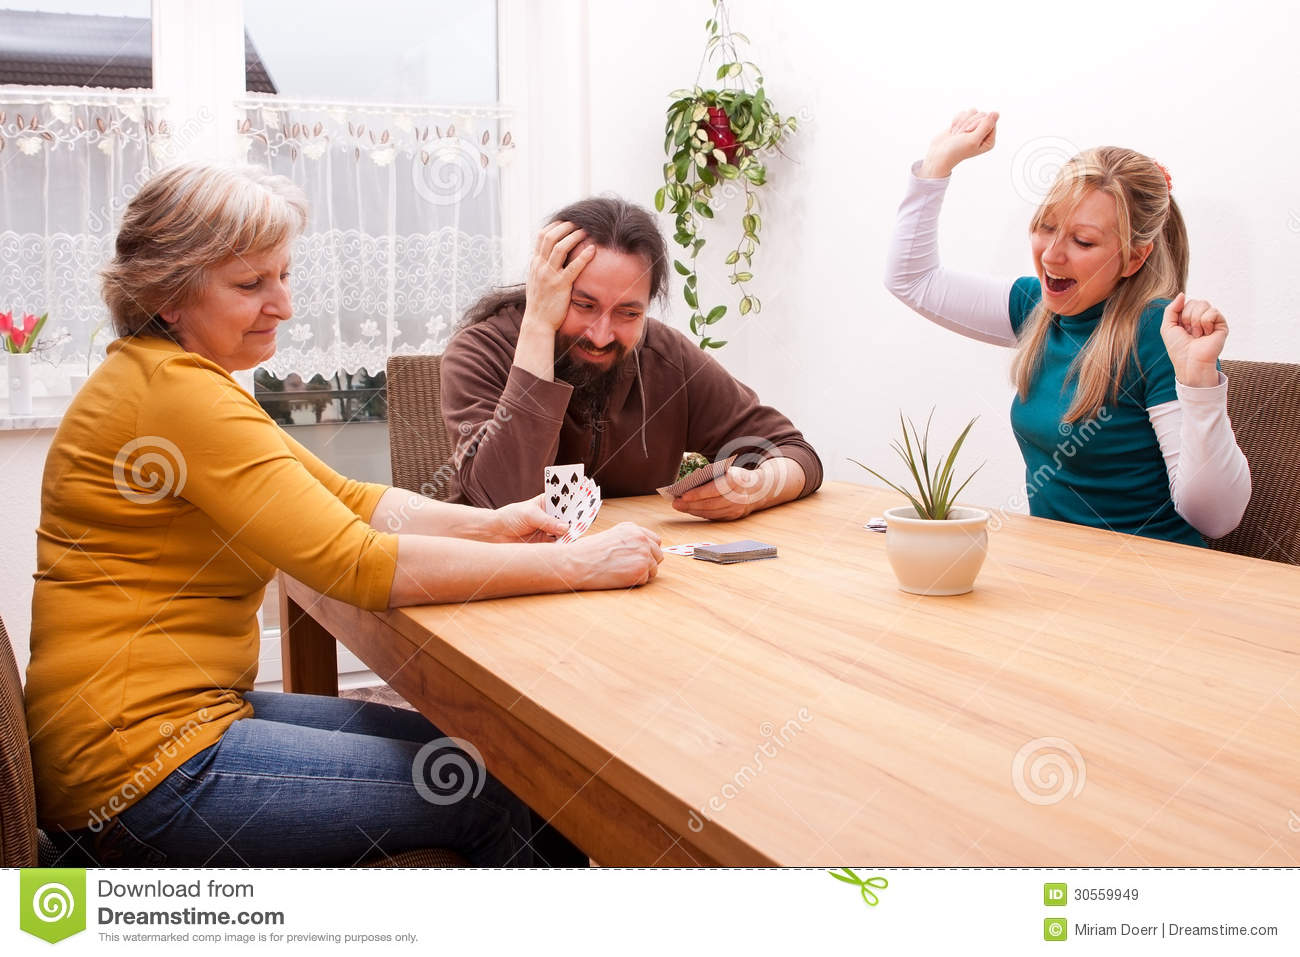 Family is playing games and having fun